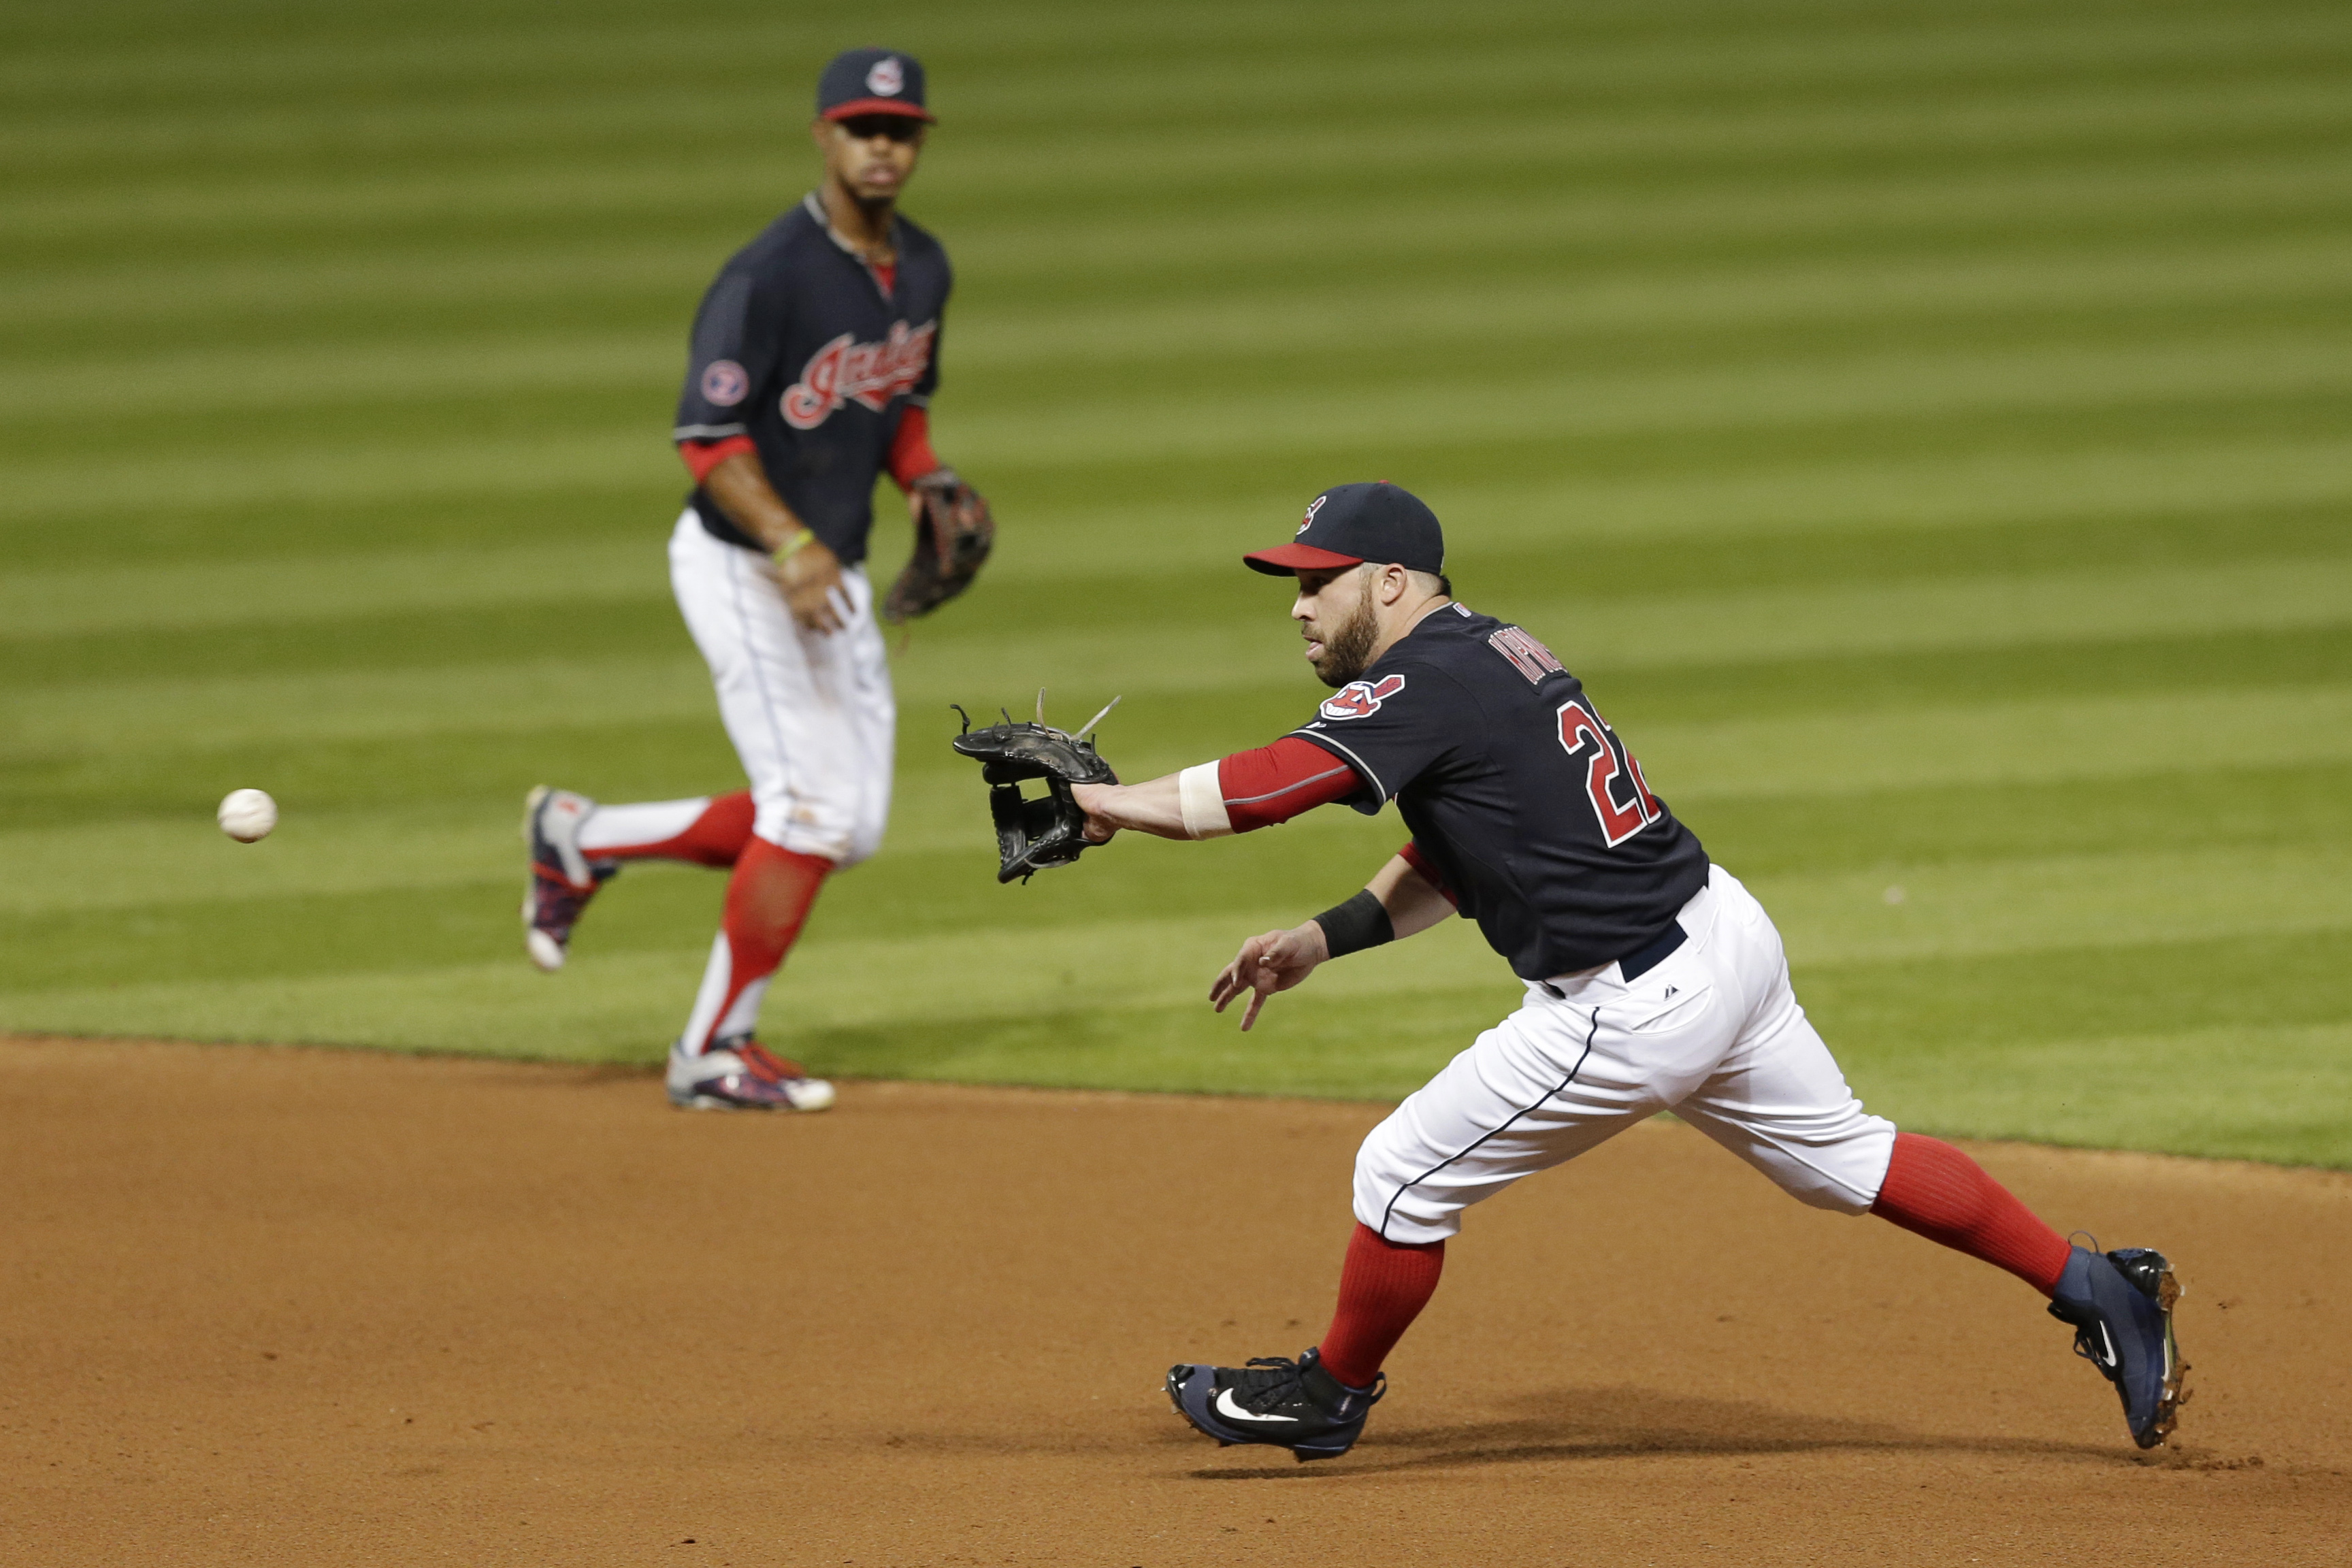 Cleveland Indians' Jason Kipnis, right, fields a ball hit by Kansas City Royals' Eric Hosmer during the fourth inning of a baseball game, Tuesday, Sept. 15, 2015, in Cleveland. Hosmer was out on the play. Francisco Lindor, left, watches. (AP Photo/Tony De